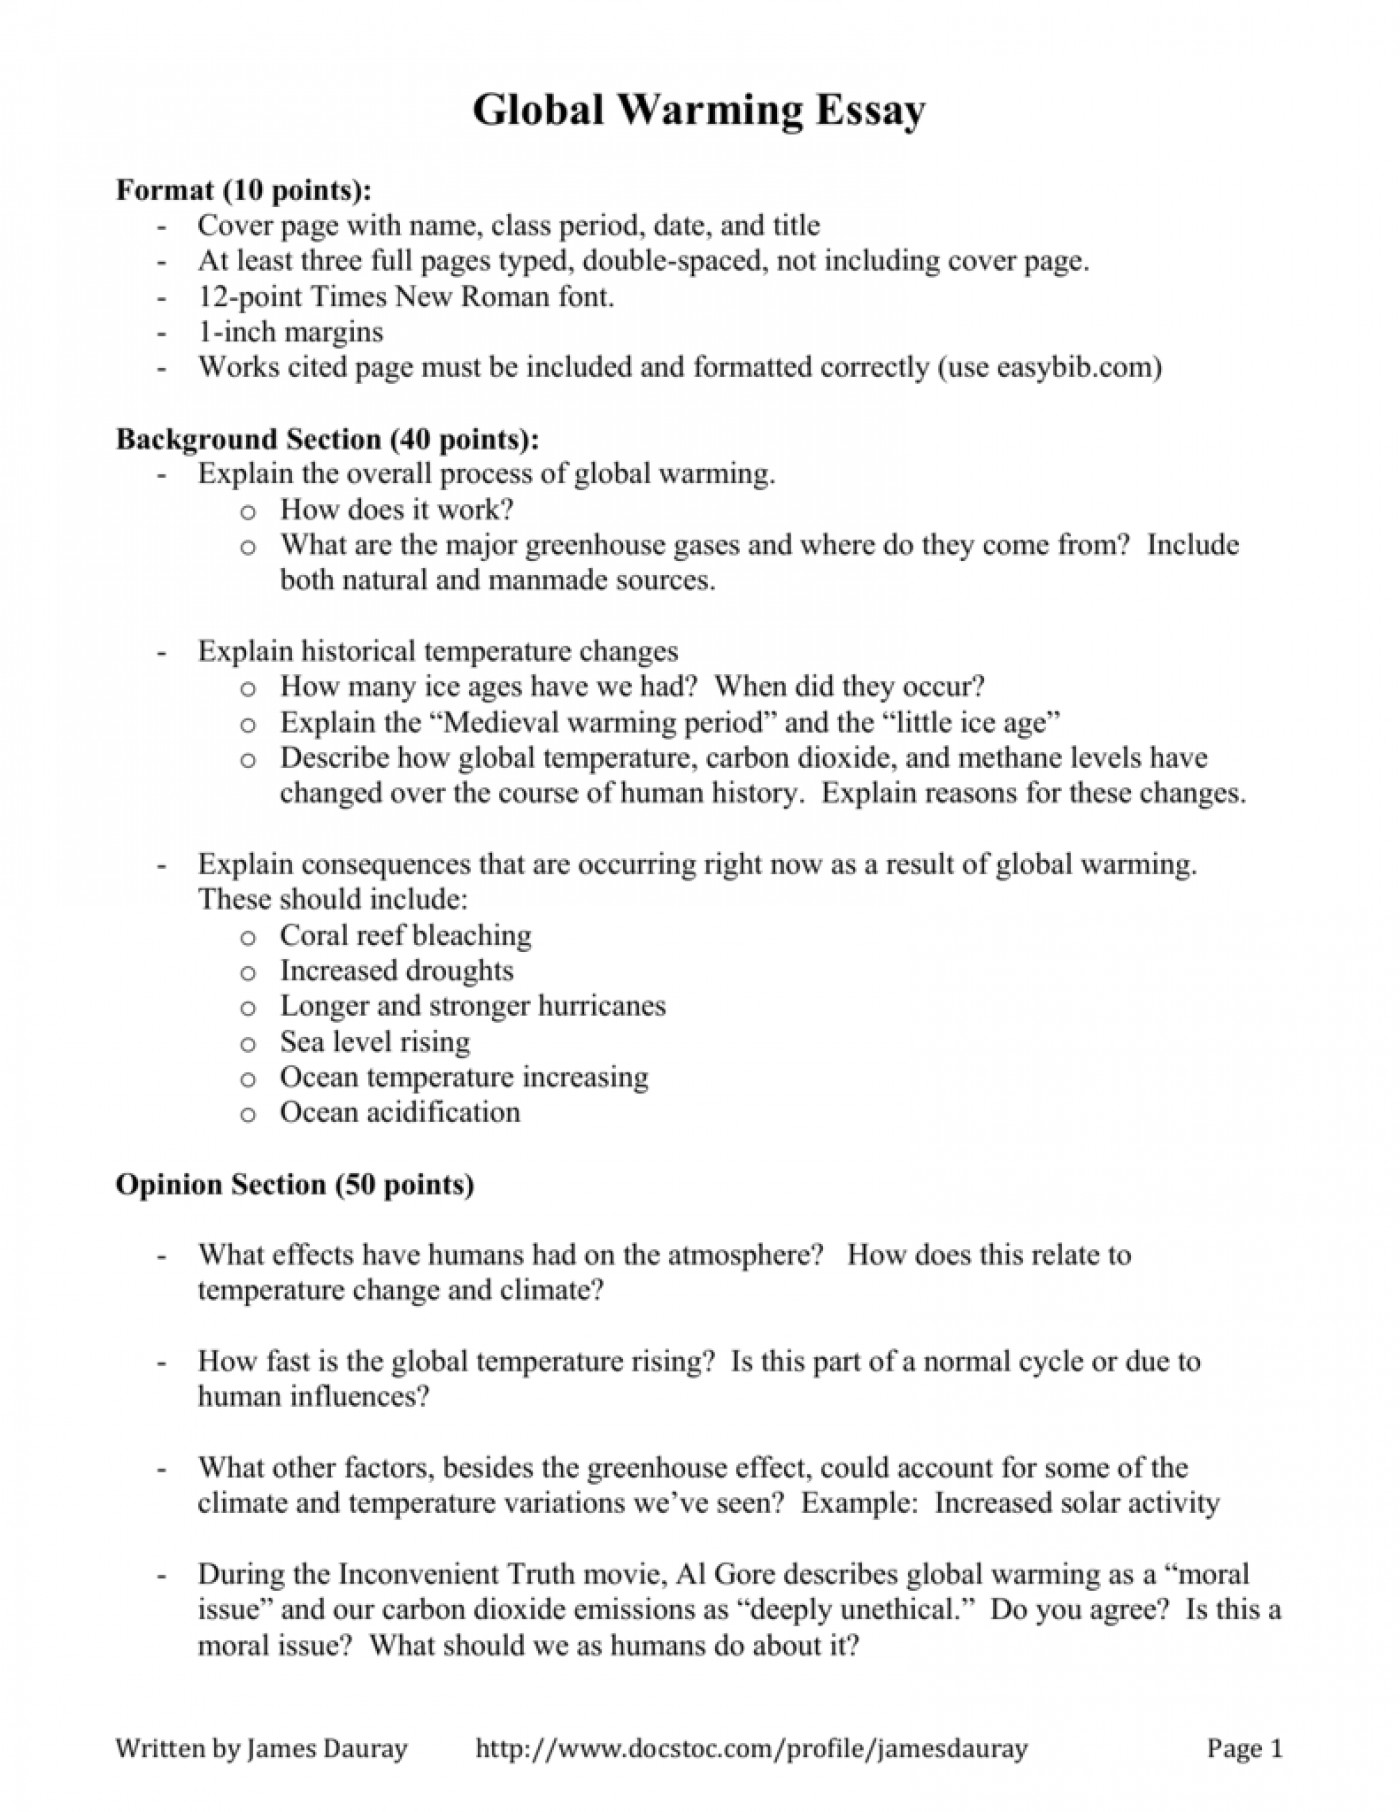 001 Global Warming Essay Example 007014108 1 Unusual Hook Conclusion Outline 1400